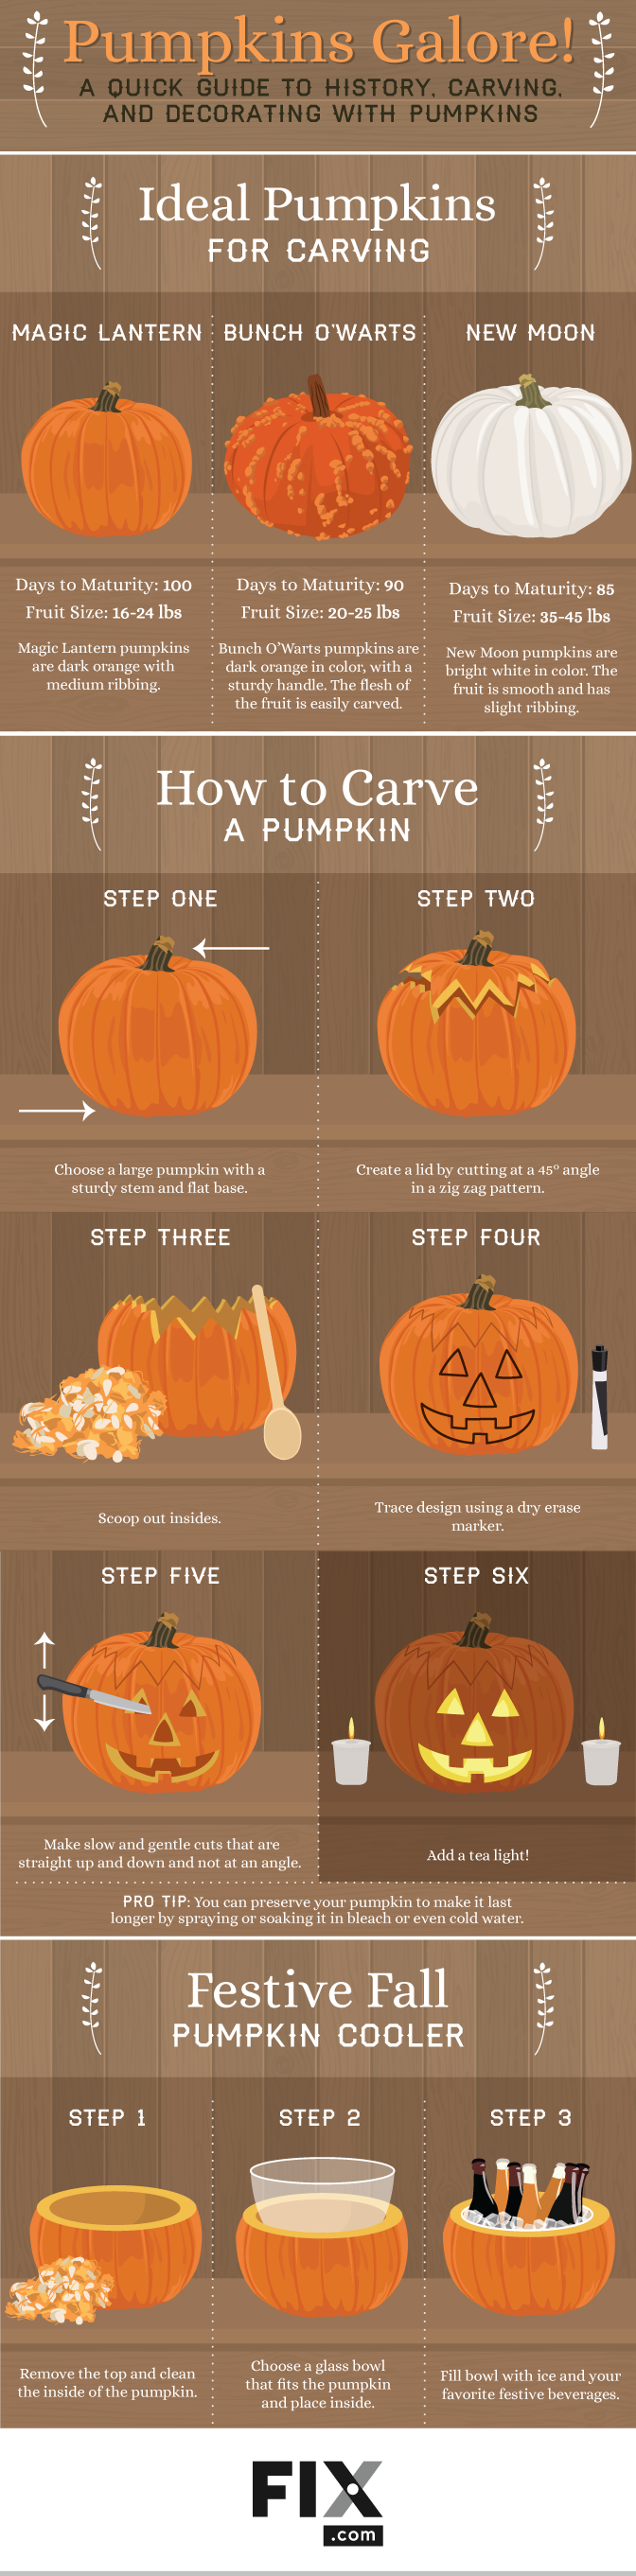 Pumpkins Galore A Quick Guide to History, Carving and Decorating with Pumpkins